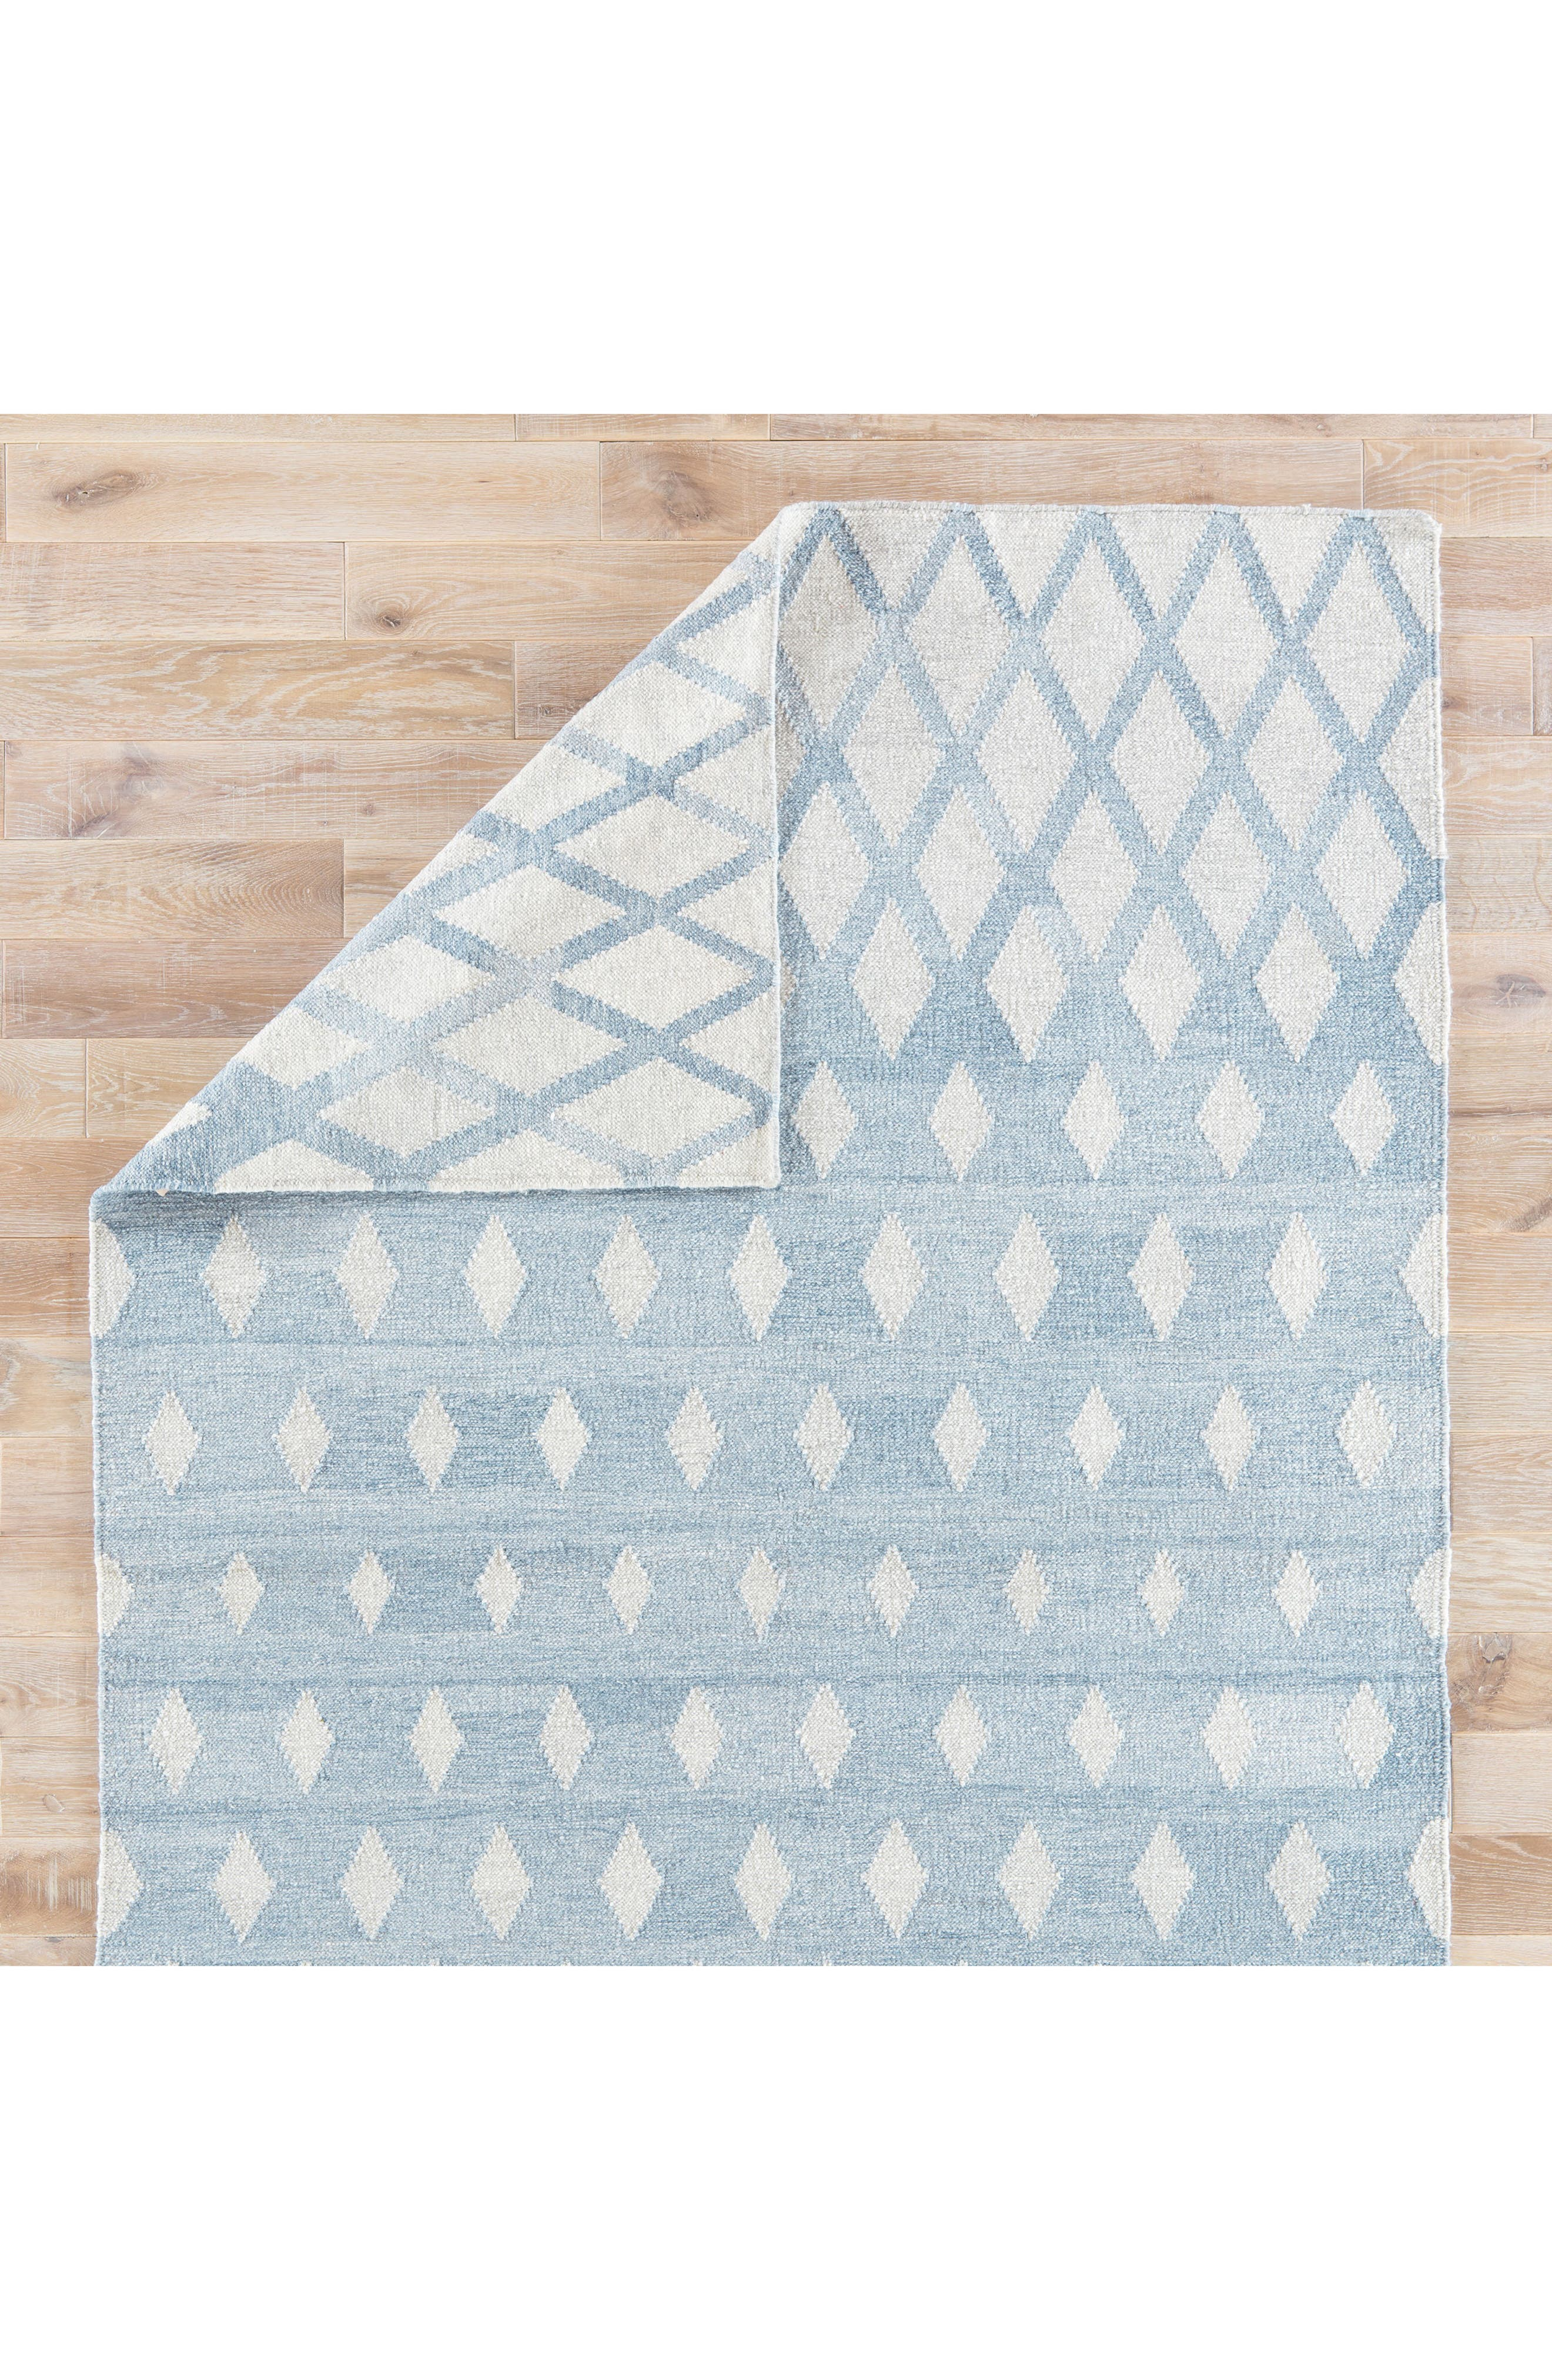 Pyramid Blocks Rug,                             Alternate thumbnail 6, color,                             Faded Denim/ Oatmeal